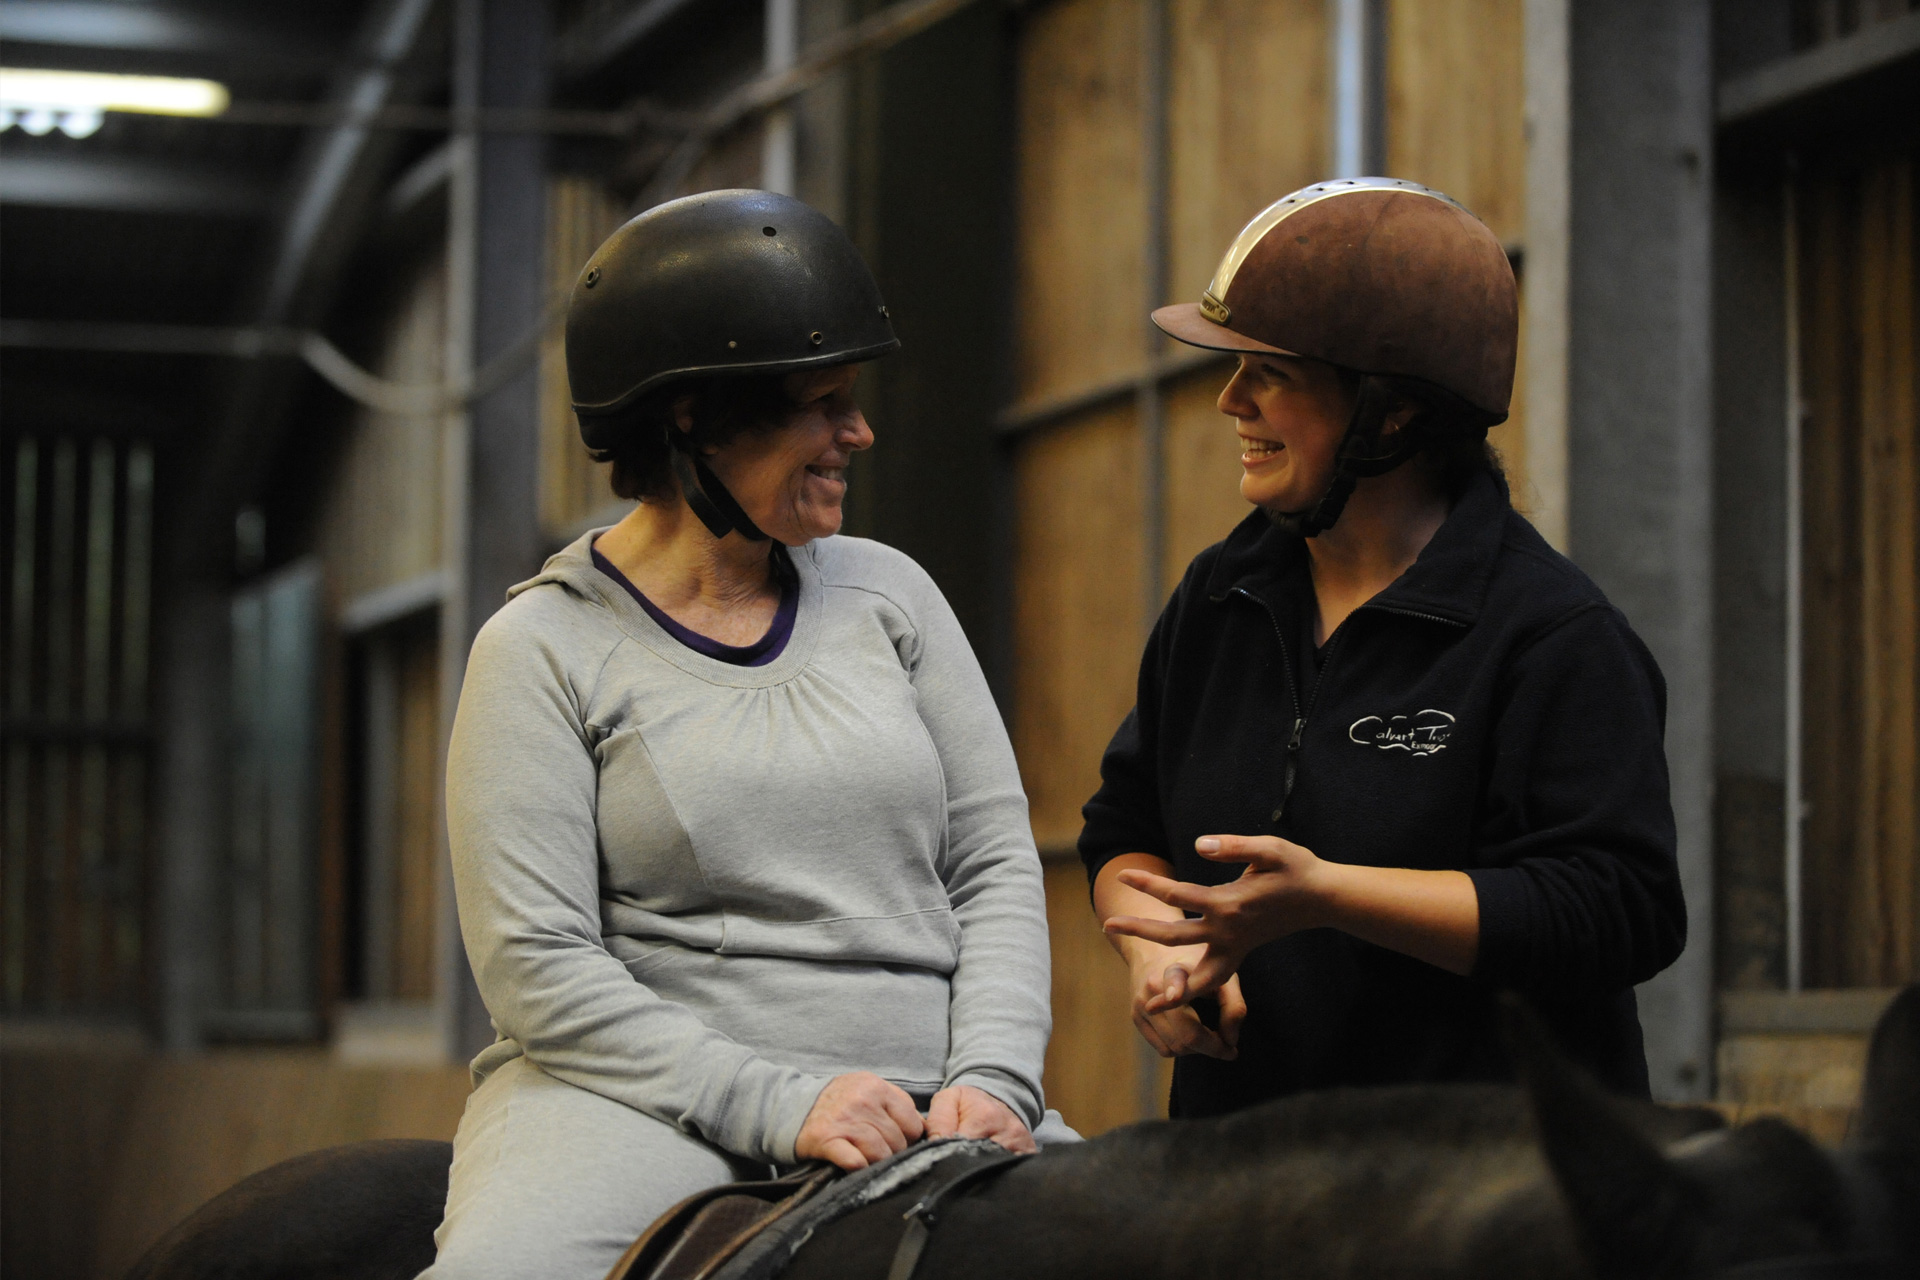 A lady sat on top of a black horse chatting to a member of the Calvert Trust stables volunteer team